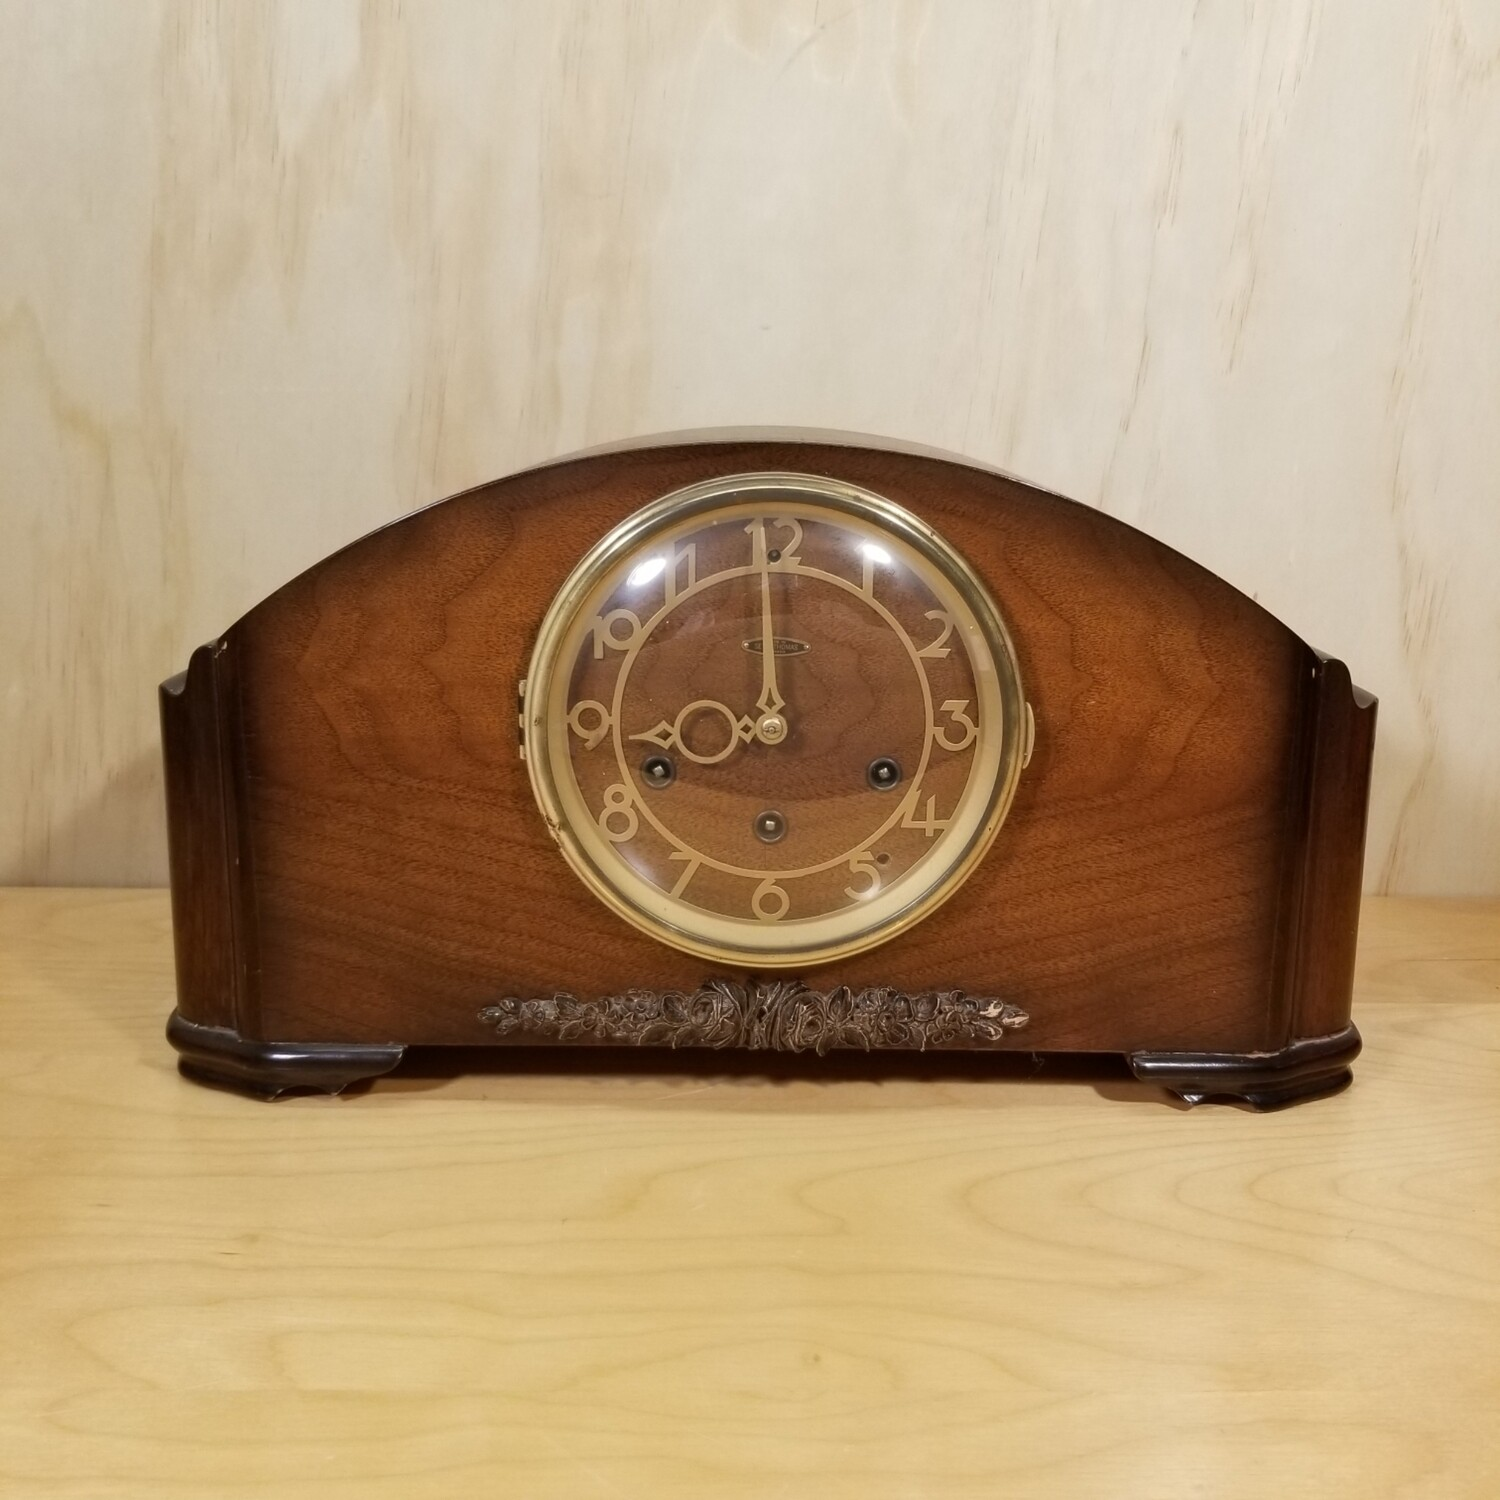 Seth Thomas 8 Day Mantel Clock with Westminister Chimes